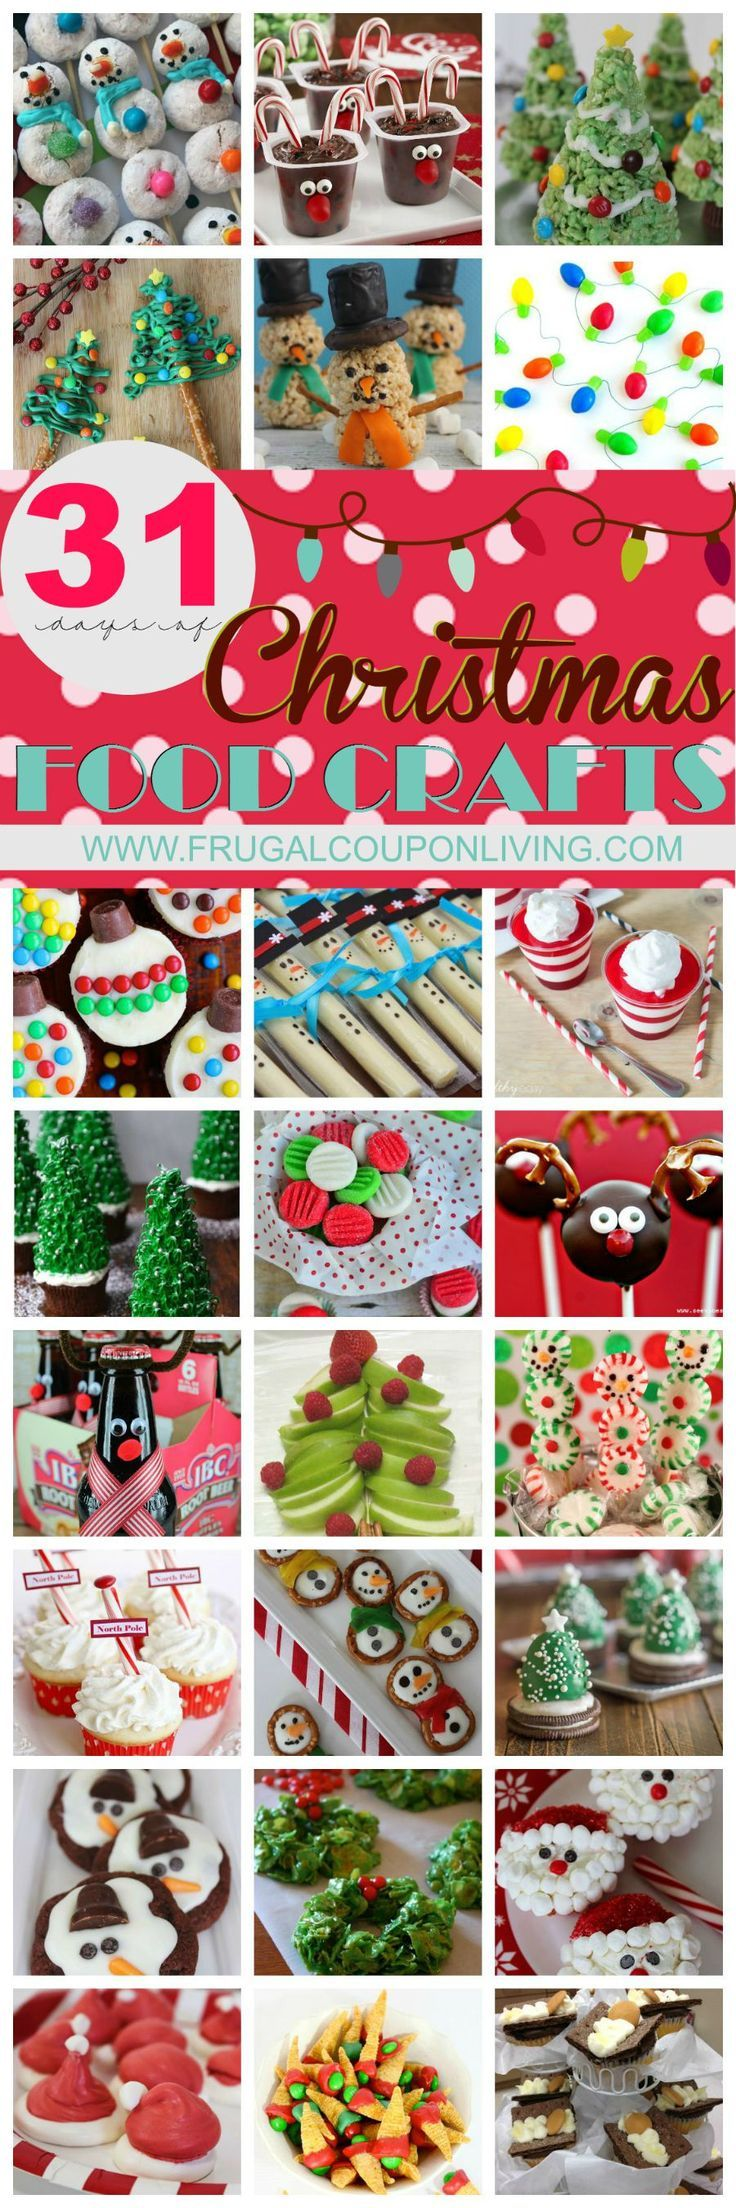 31 Days of Christmas Food Crafts on Frugal Coupon Living. Great Holiday Snack Id...